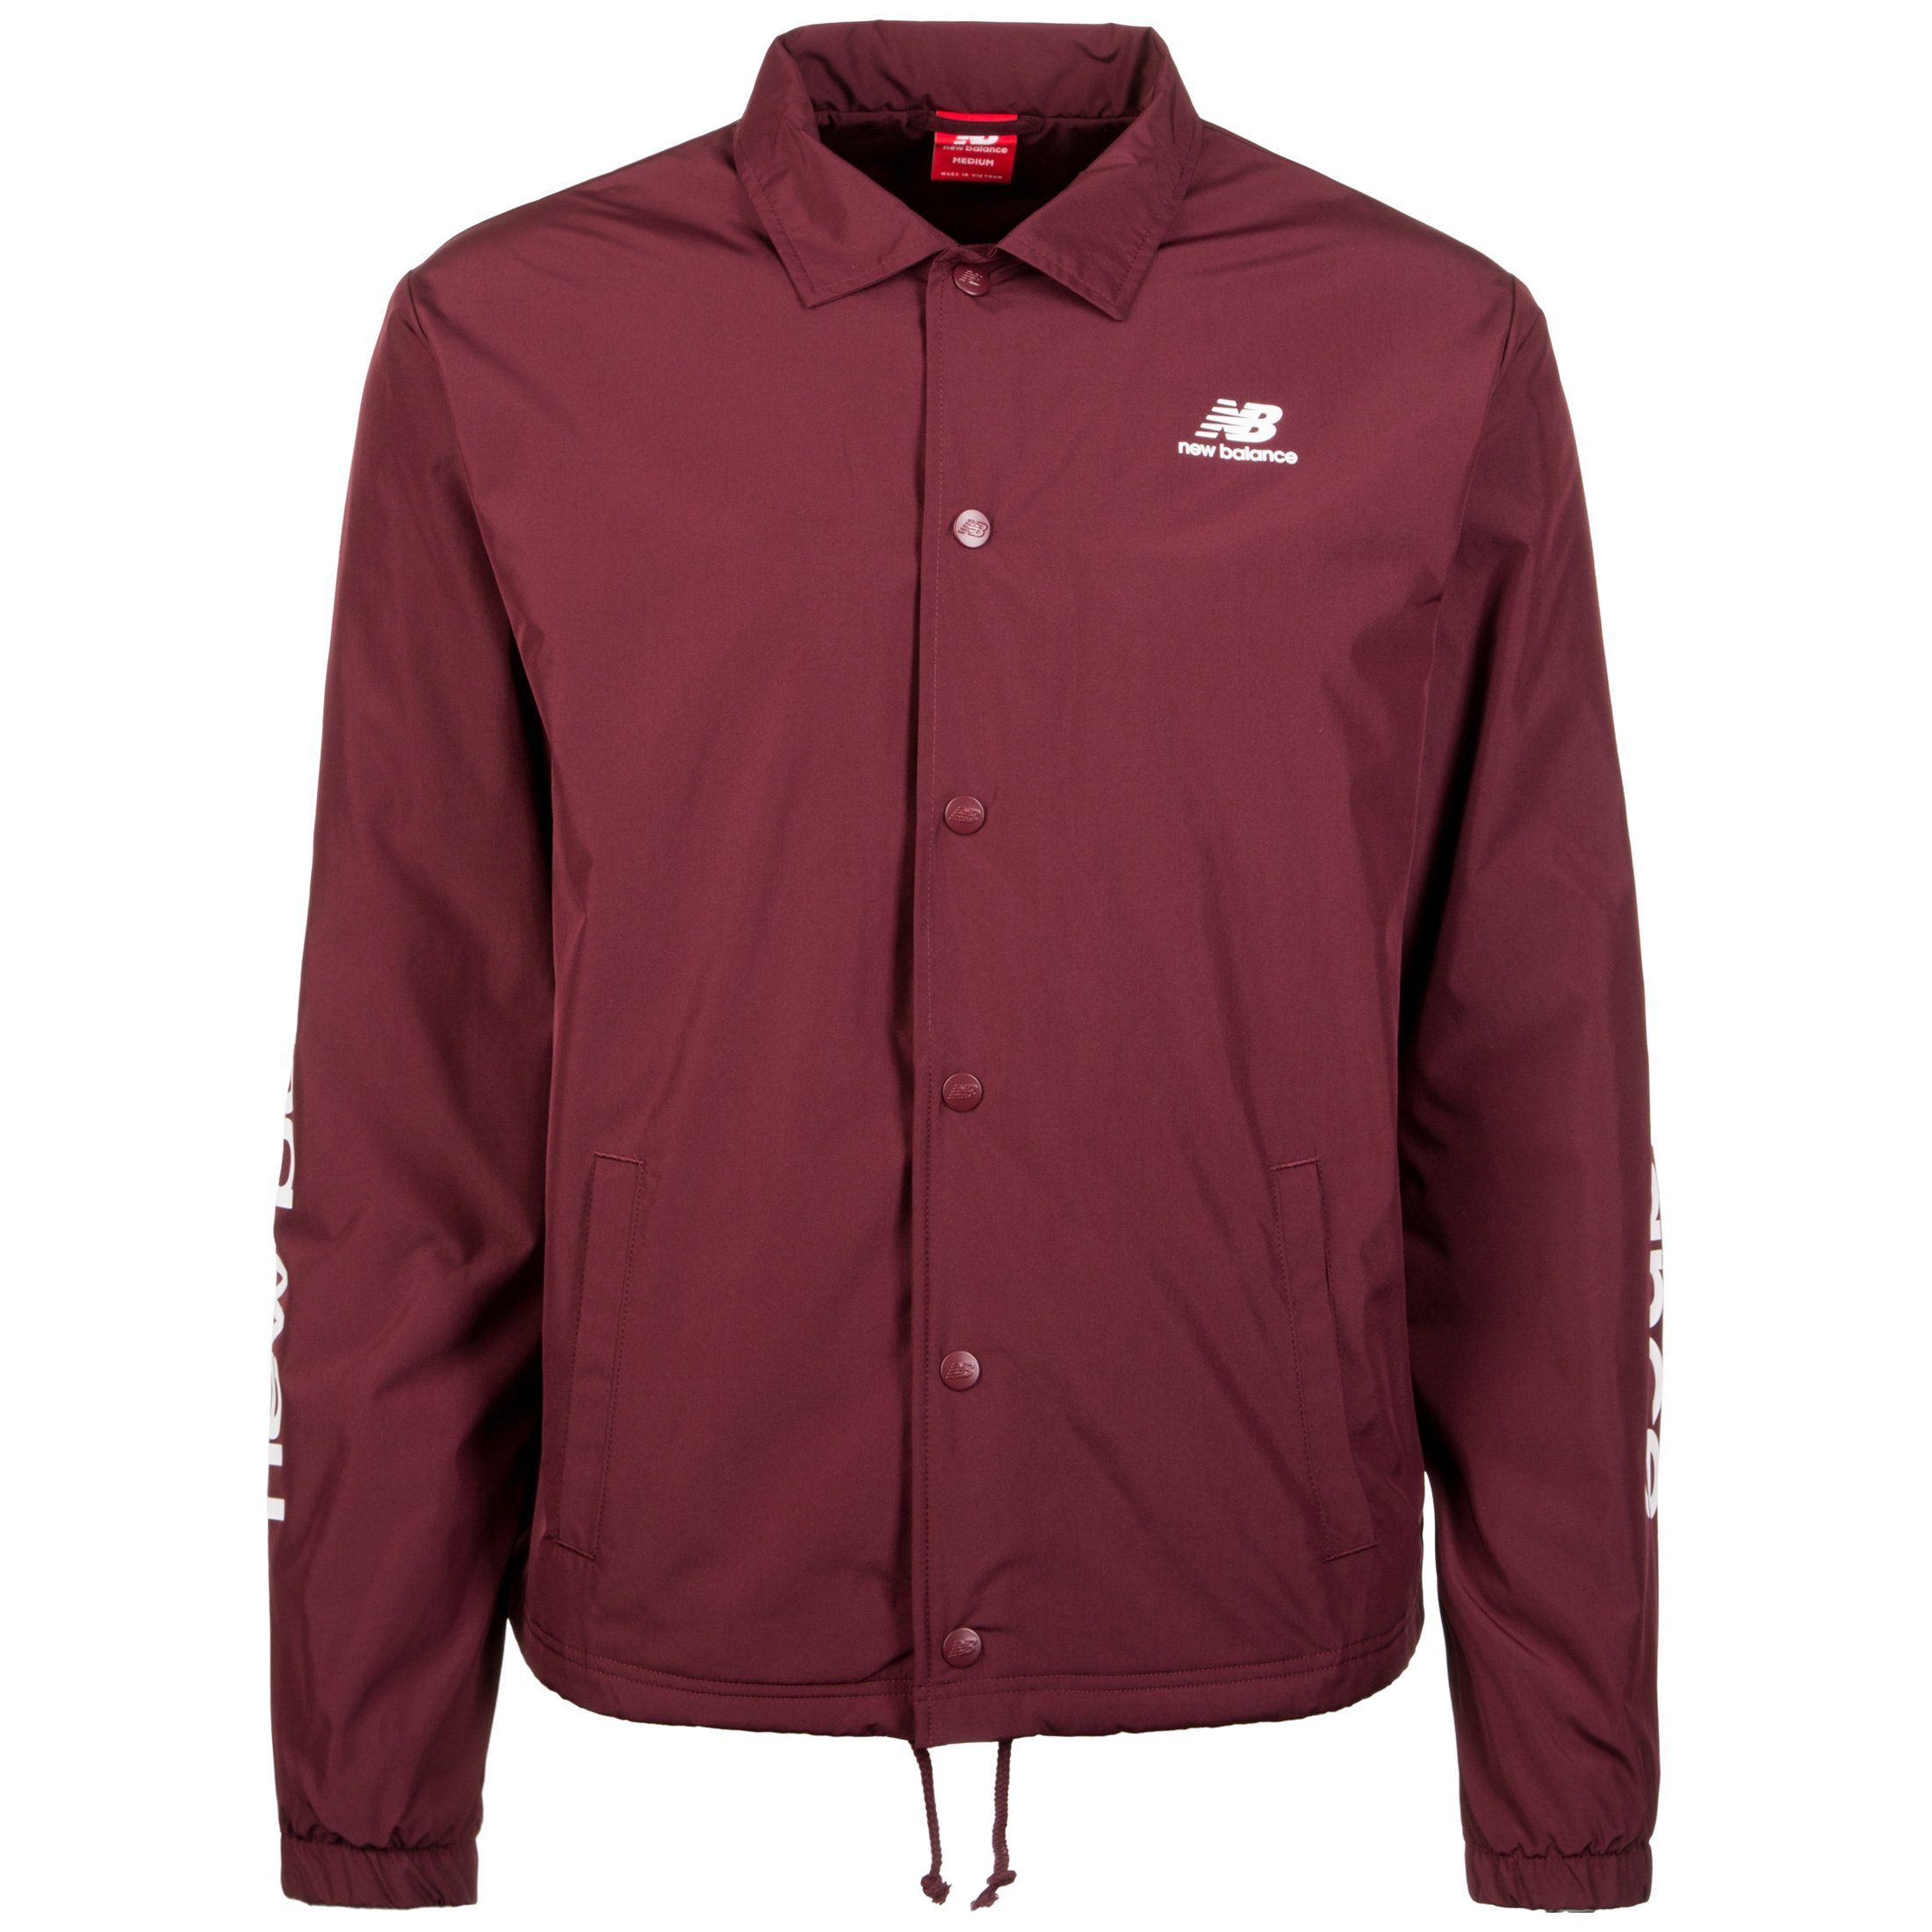 New Balance Winterjacke Essentials Winter Coaches | Bekleidung > Jacken > Winterjacken | New Balance